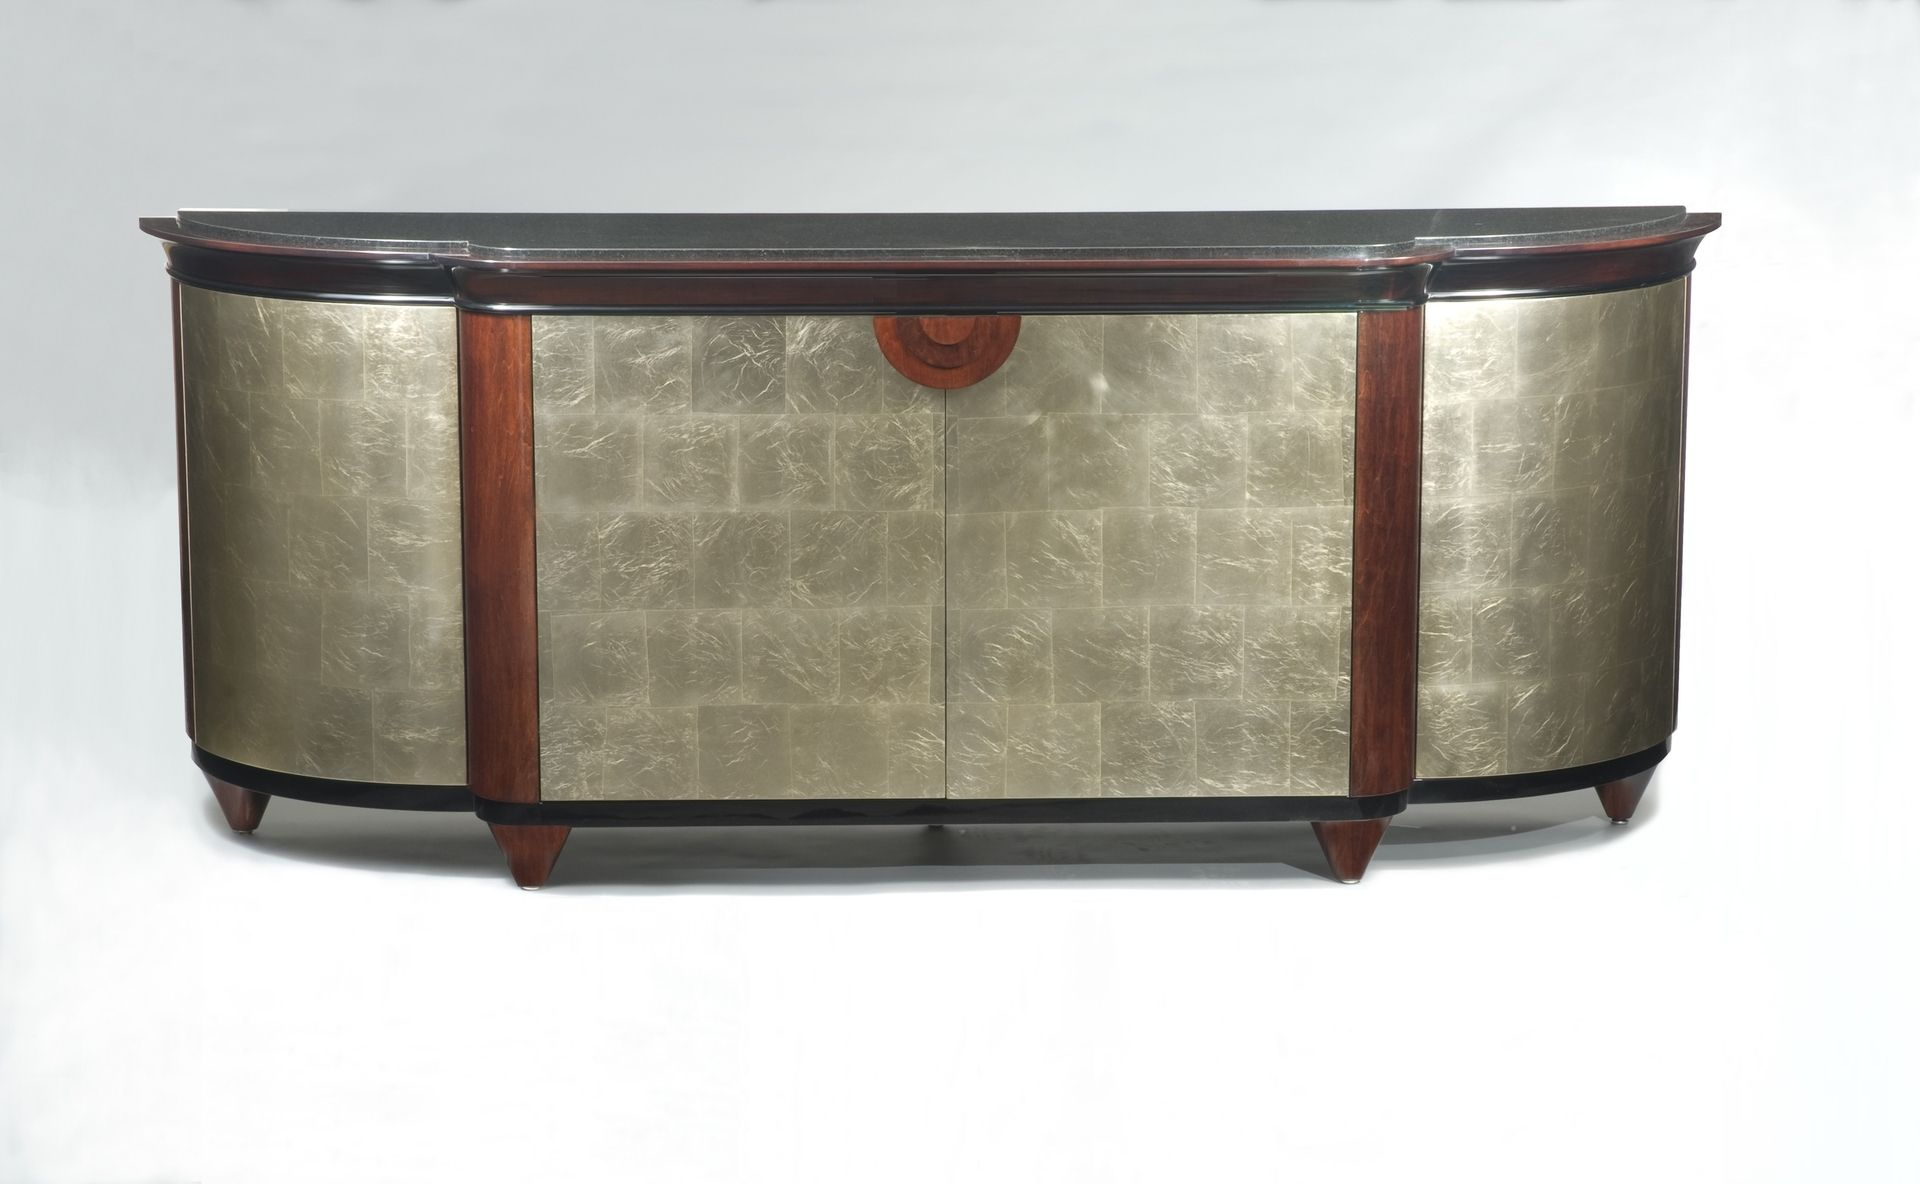 Hand Crafted Crown Buffet By Lee Weitzman Furniture (LWF) This Is An  Example Of